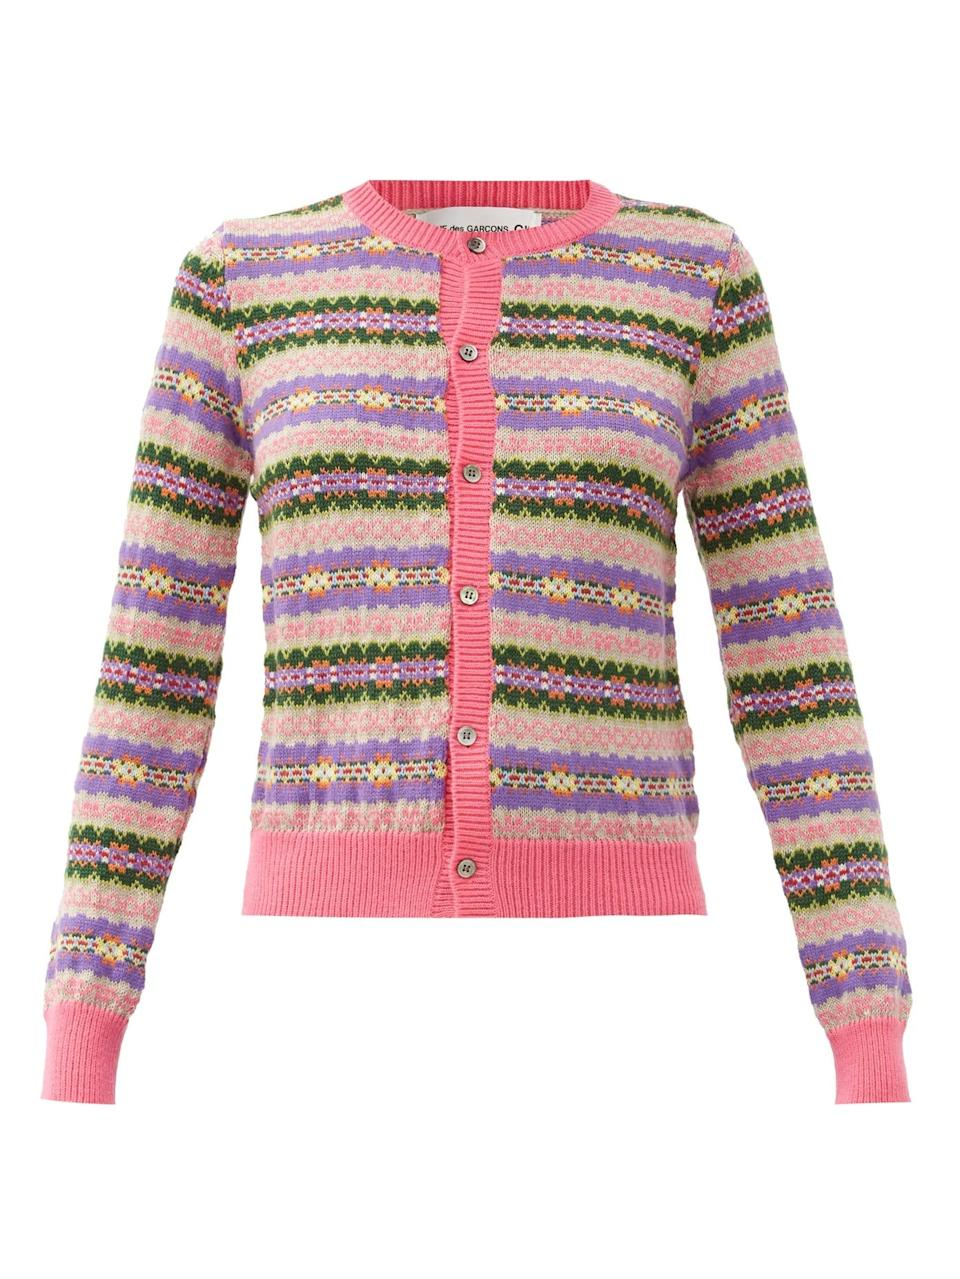 """<br><br><strong>Comme des Garçons Girl</strong> Wool Cardigan, $, available at <a href=""""https://www.matchesfashion.com/products/Comme-des-Gar%C3%A7ons-Girl-Fair-Isle-jacquard-wool-cardigan-1379241"""" rel=""""nofollow noopener"""" target=""""_blank"""" data-ylk=""""slk:Matches Fashion"""" class=""""link rapid-noclick-resp"""">Matches Fashion</a>"""